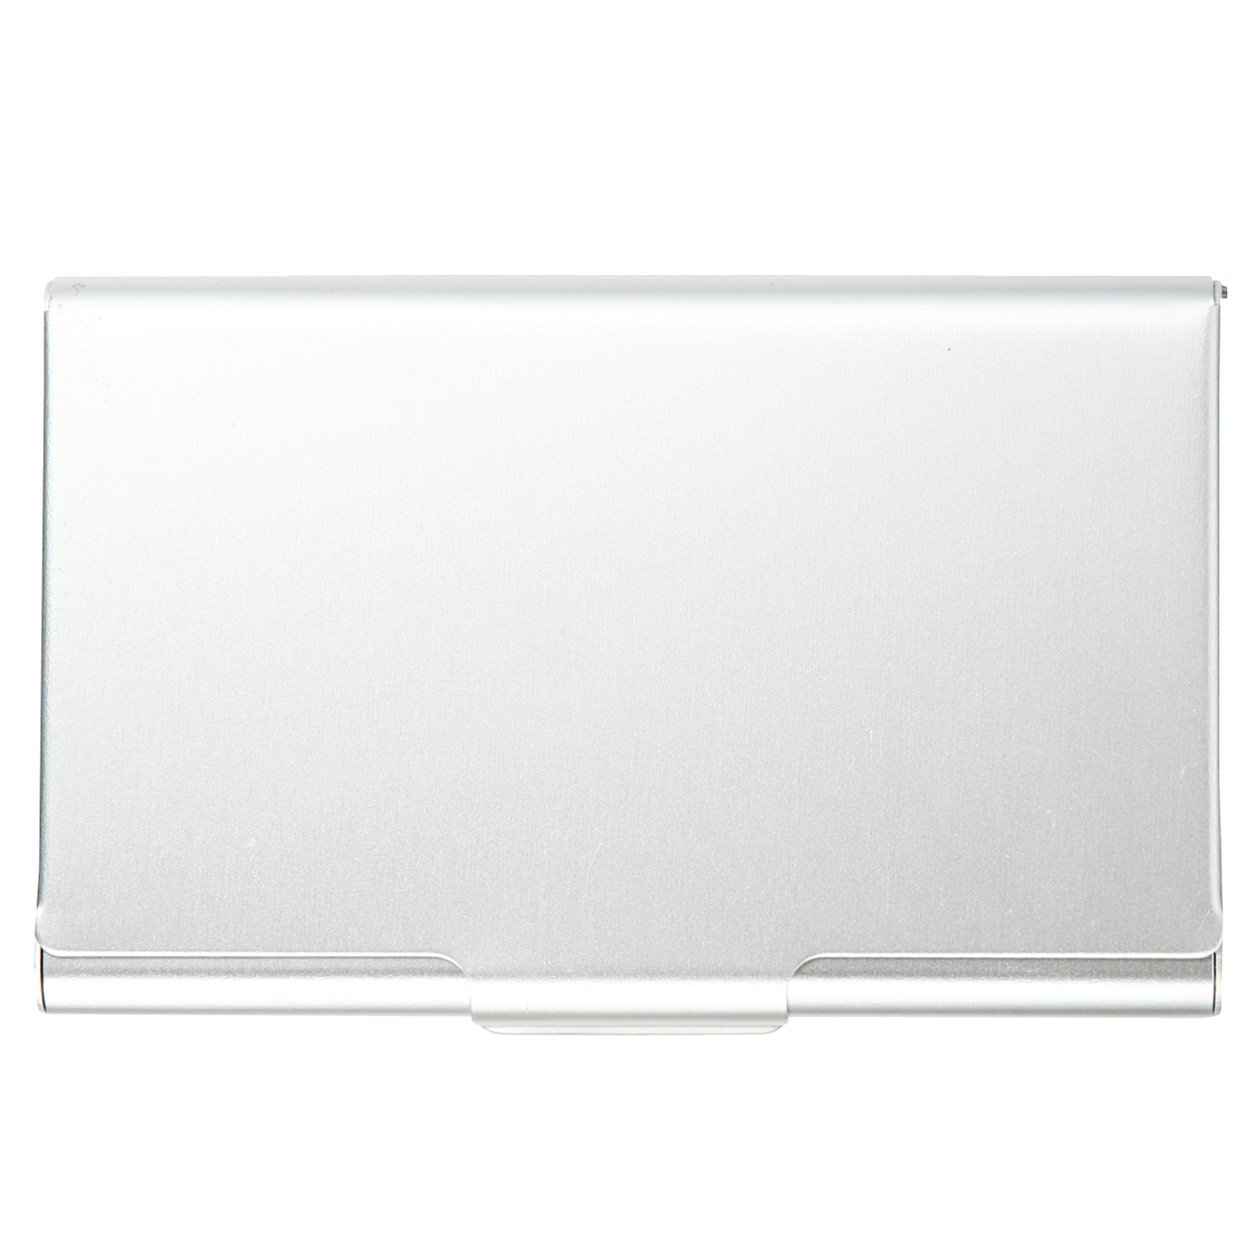 Amazon.com : Muji Aluminum Card Case - Thick : Business Card Holders ...